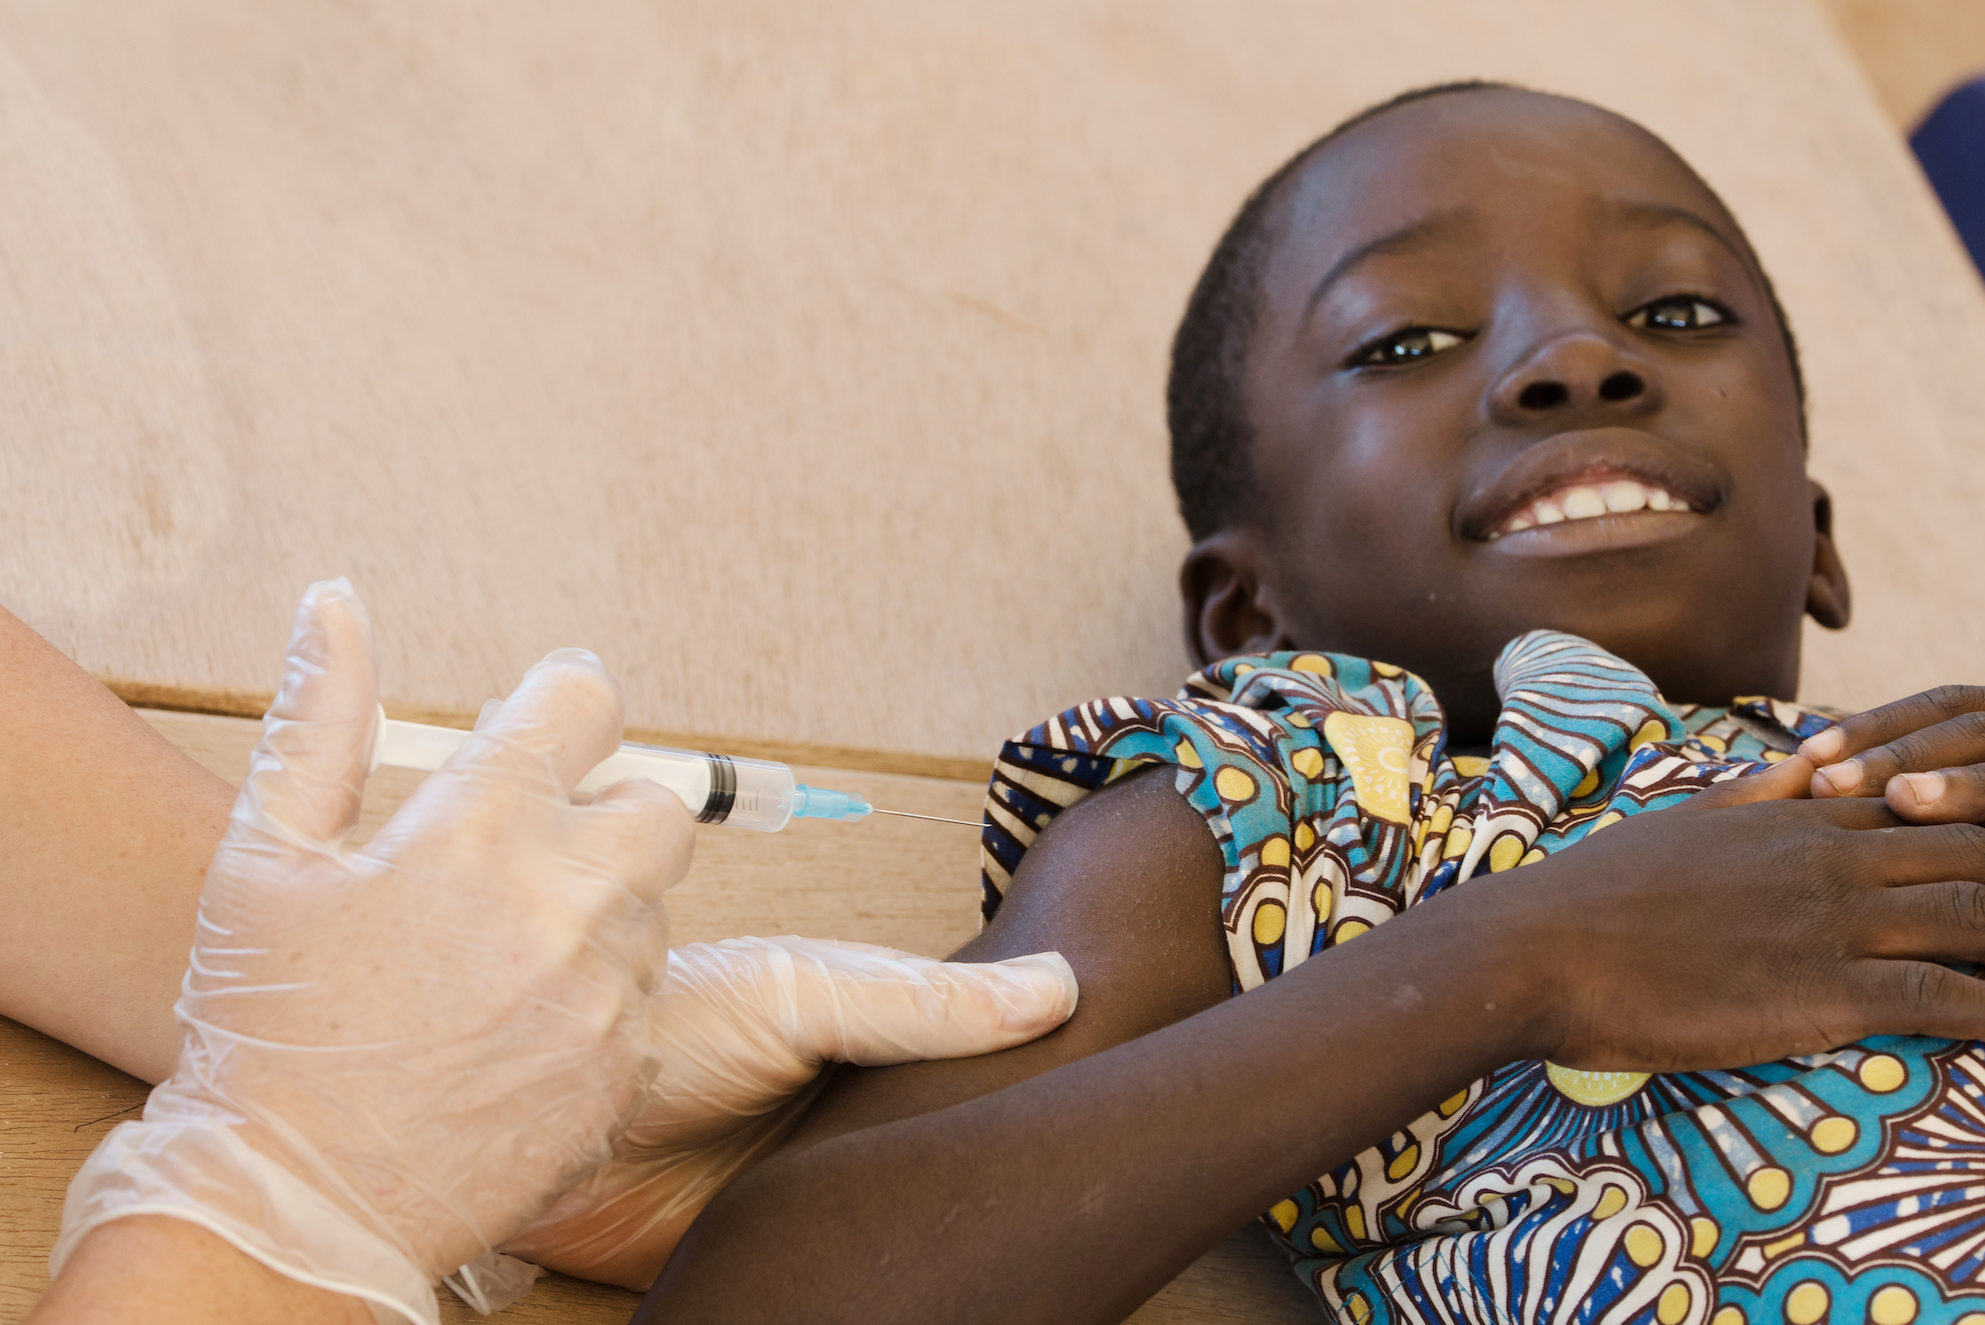 Diabetes And Refugees – Taking A Global Look At Diabetes Among Refugees